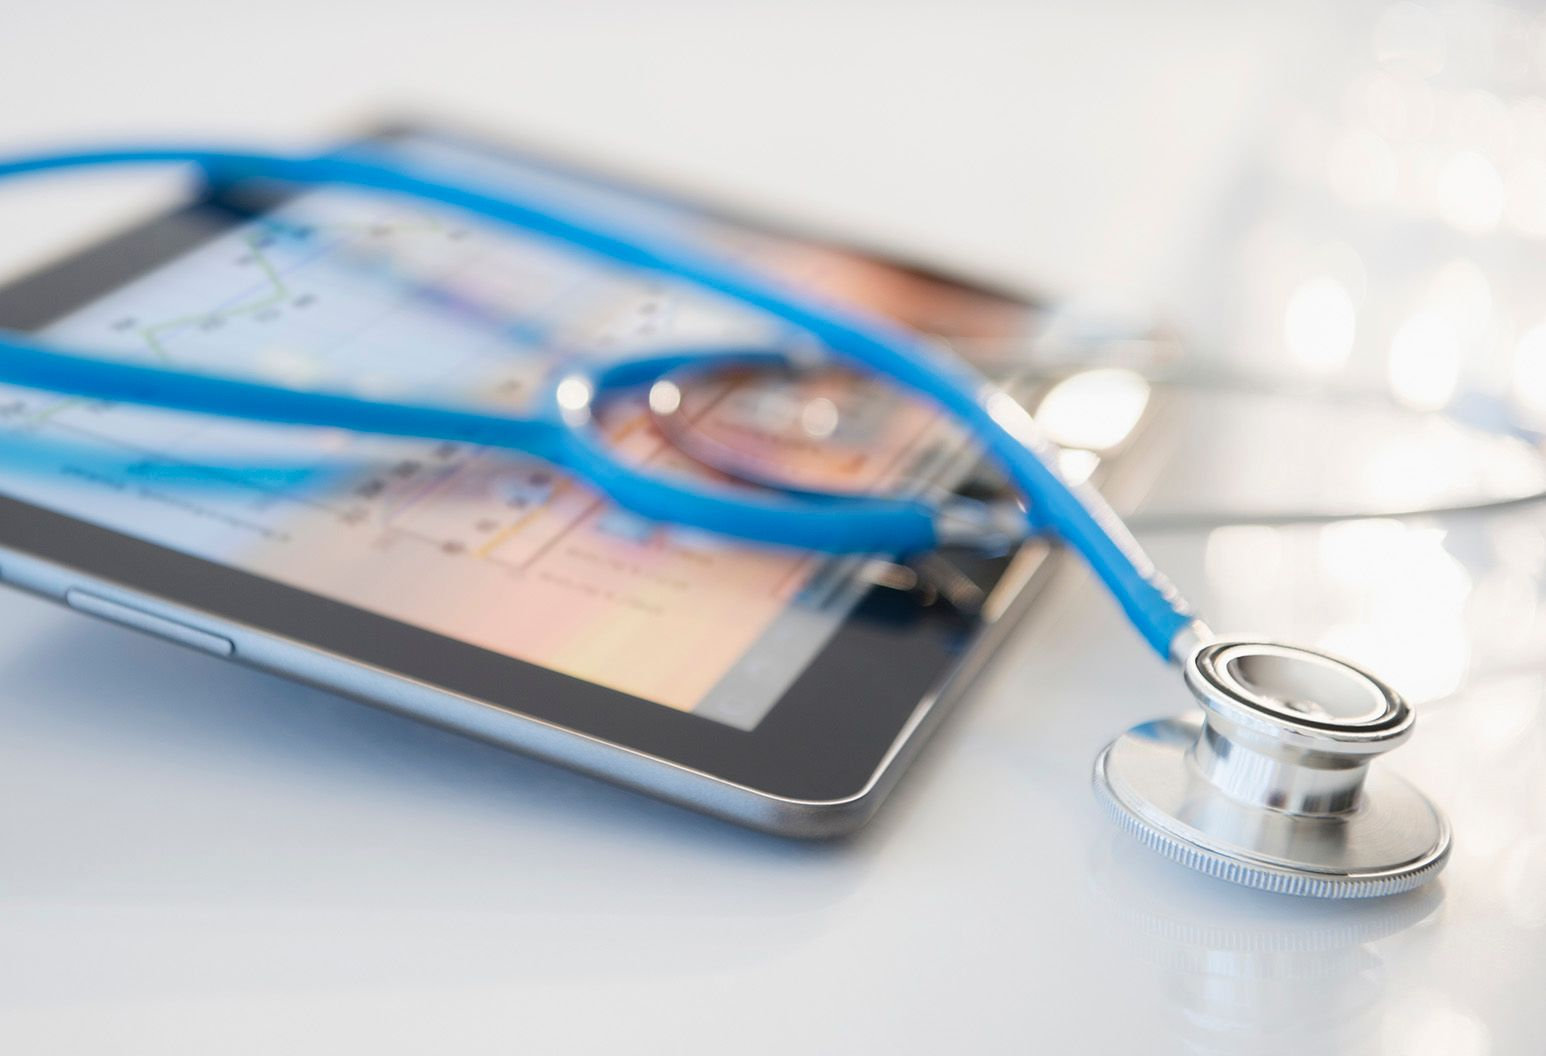 Blue stethoscope is shown over a computer tablet.